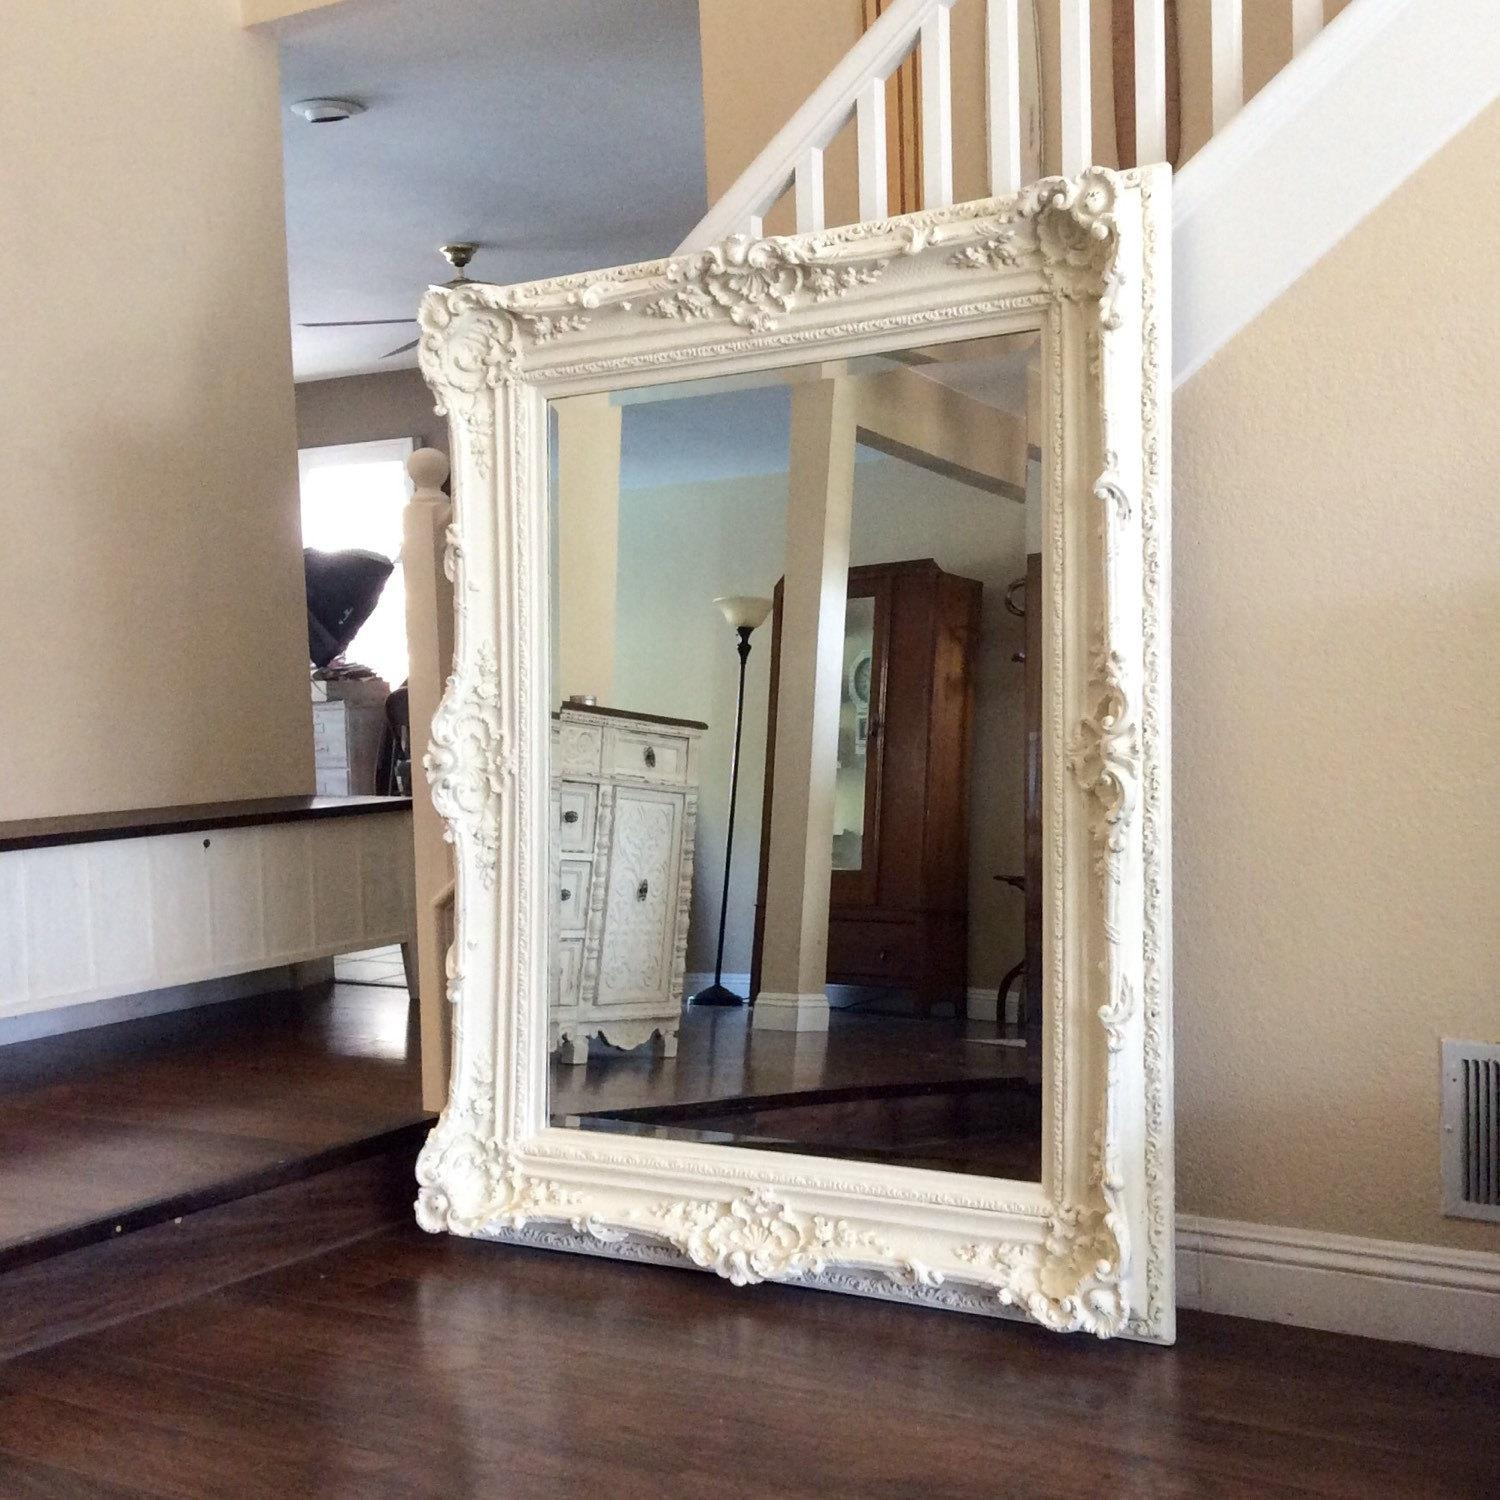 Pictures: Wall Mirrors For Sale, – Home Decoration Ideas Inside Huge Mirrors For Sale (Image 16 of 20)